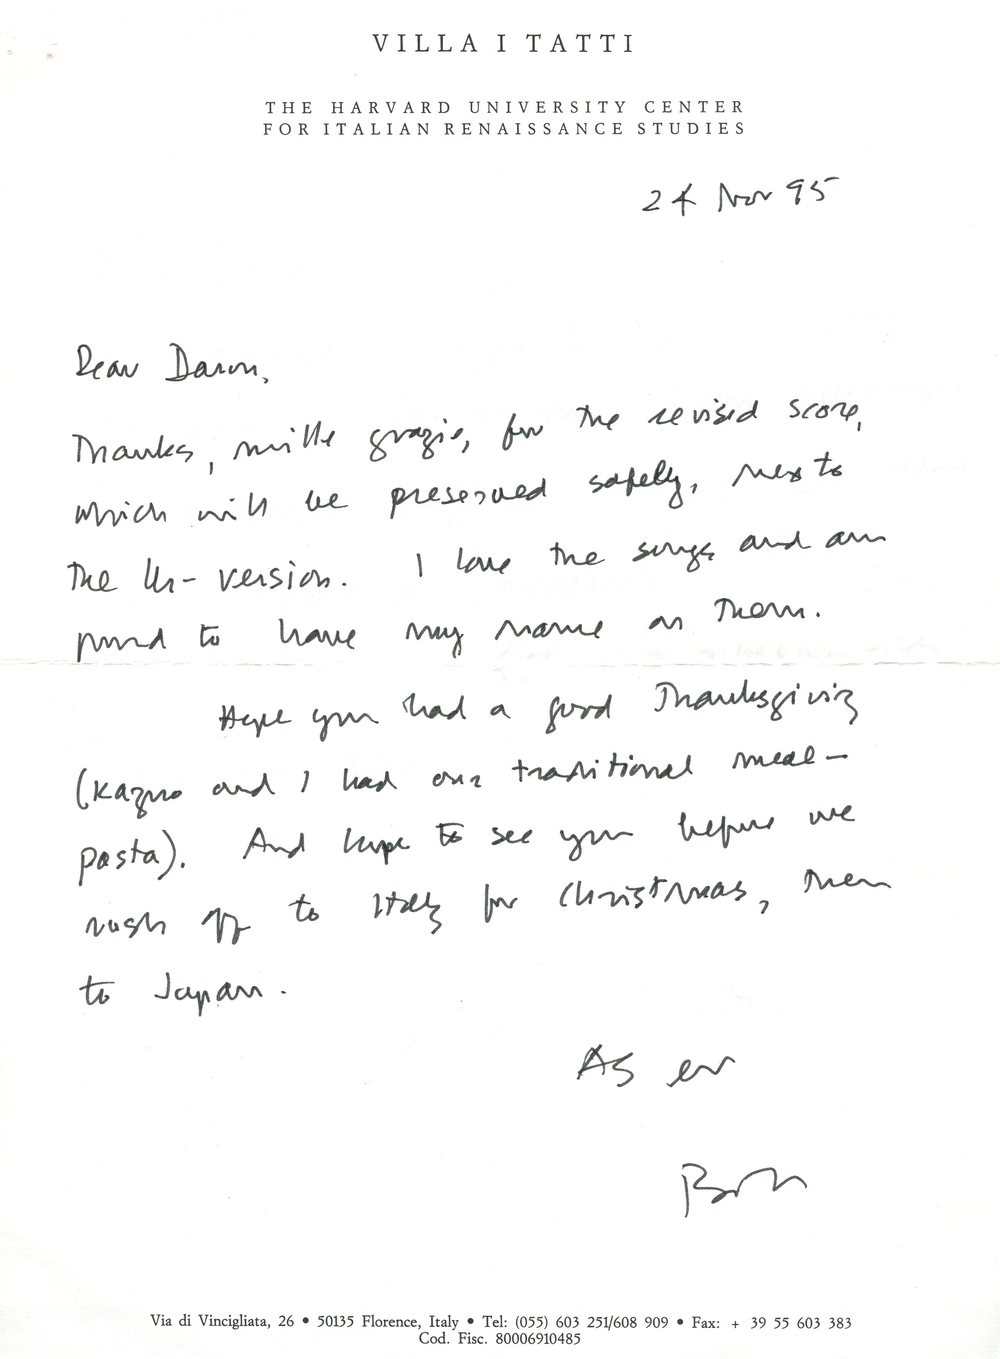 A letter from William Weaver to Daron Hagen.